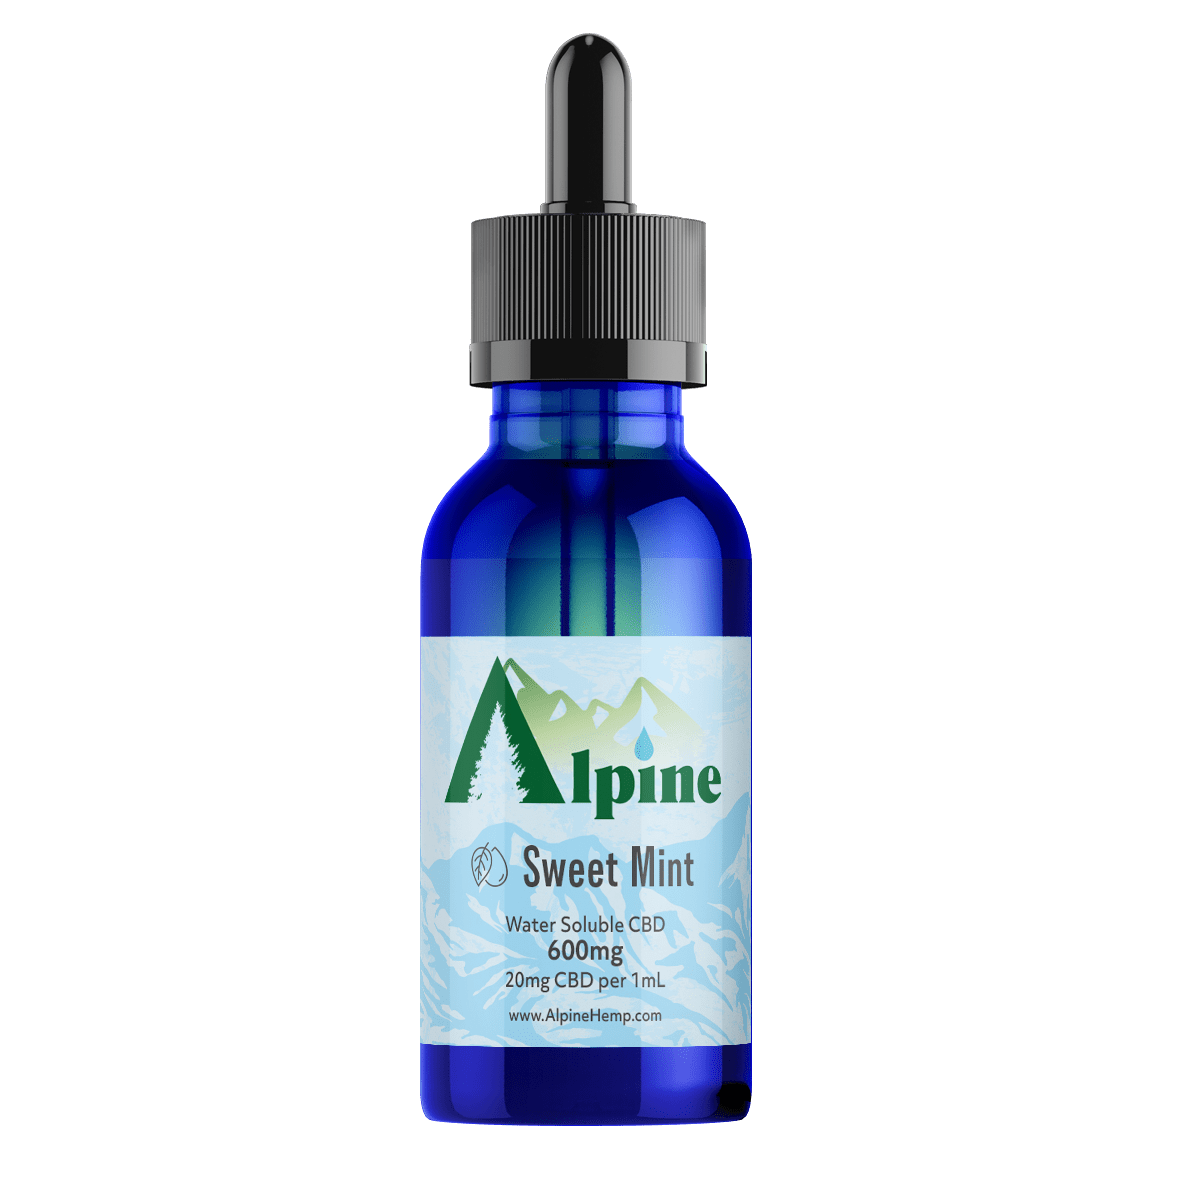 cbd, cannabidiol, hemp, cbd products, hemp products, tincture, water soluble cbd